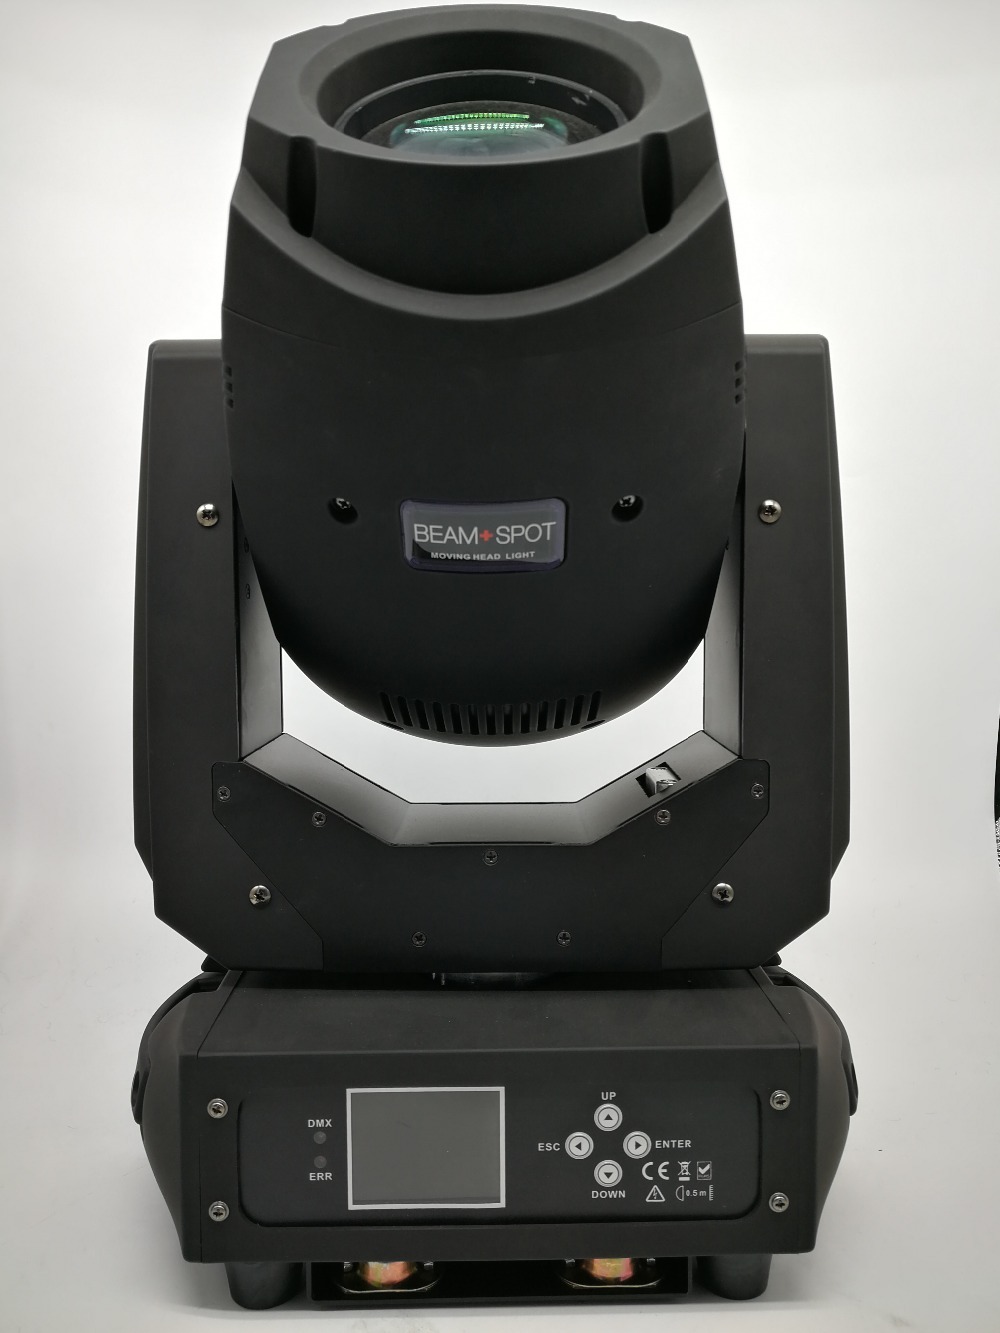 American dj moving head mini 200W rgbw led gobo move head dmx stage lighting lcd display professional dj equipment with fly case cheap stage lighting 132w 2r mini sharpy beam moving head disco light with flight case dj equipment 14 gobo dmx stage lighting